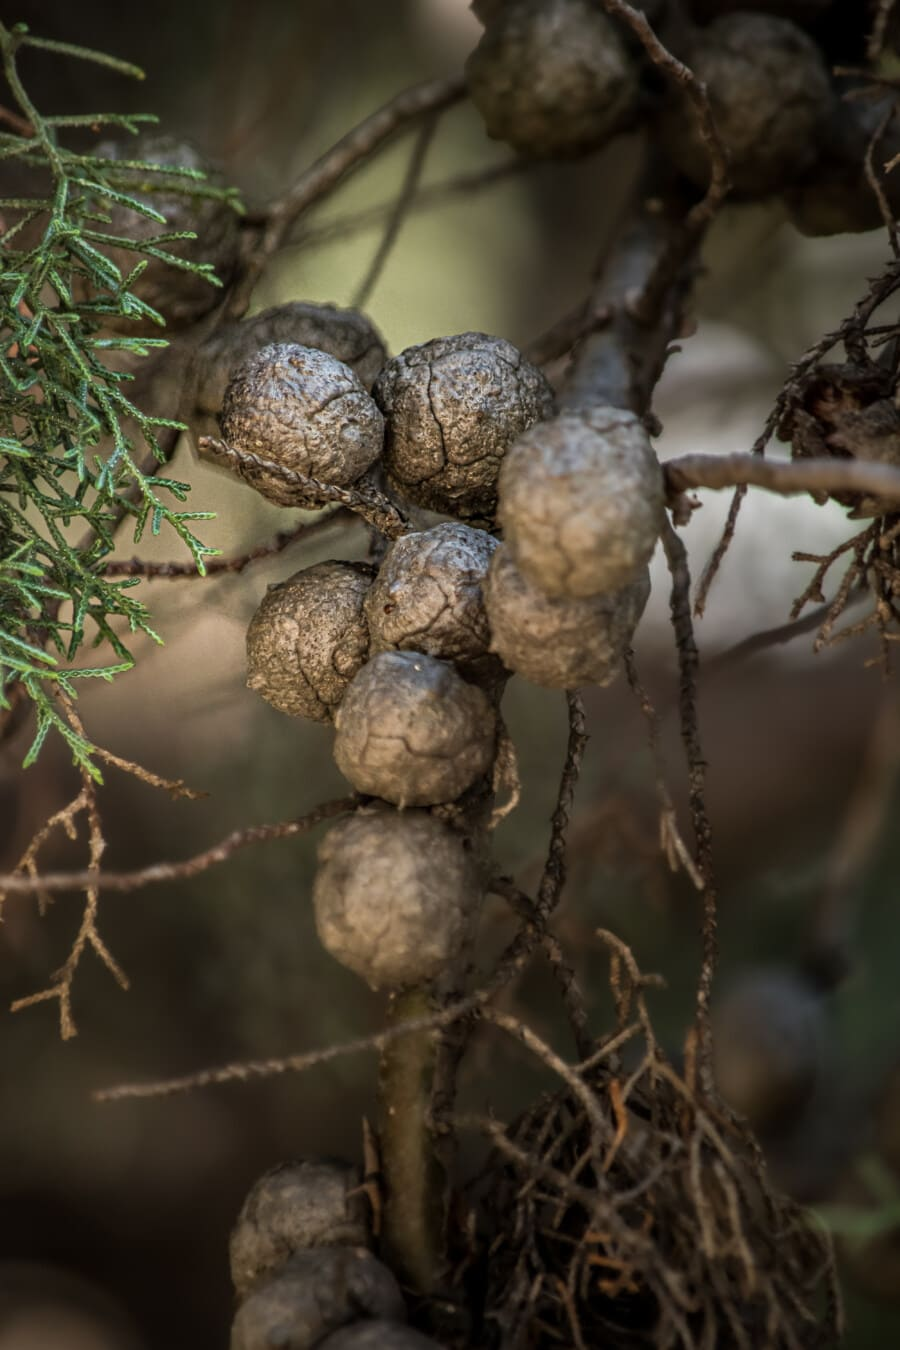 seed, round, conifer, tree, evergreen, close, nature, wood, leaf, dry